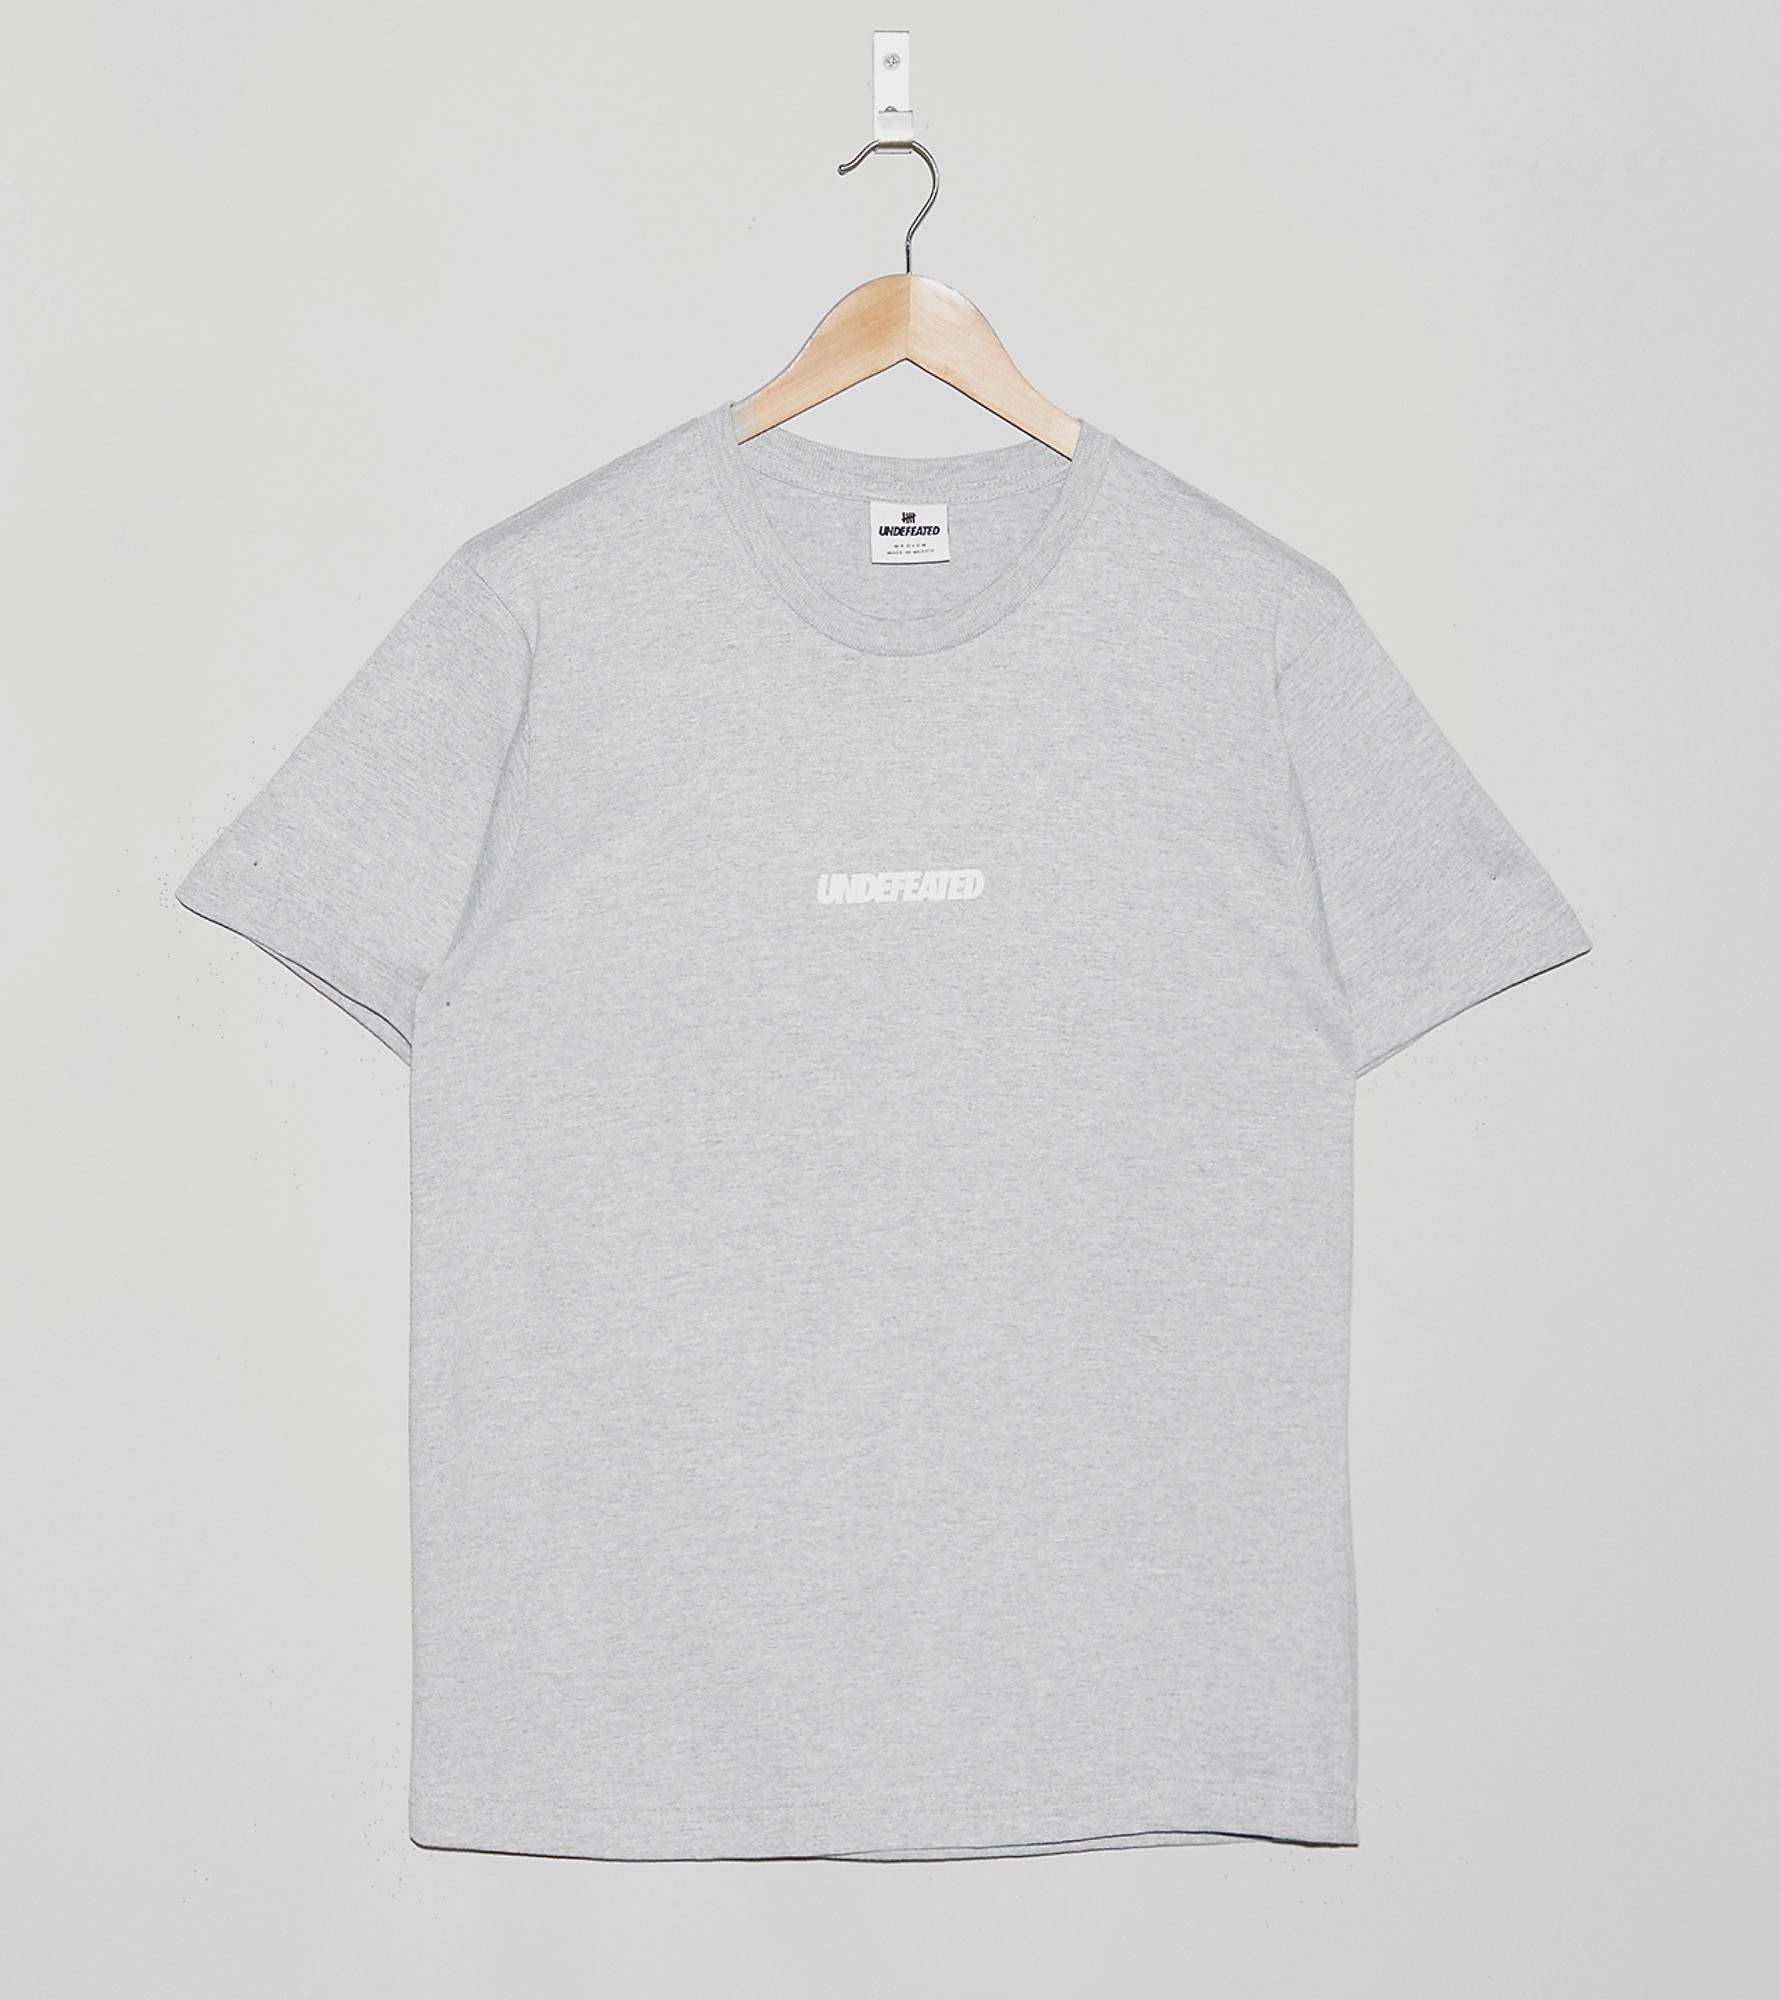 Undefeated Unbalanced T-Shirt